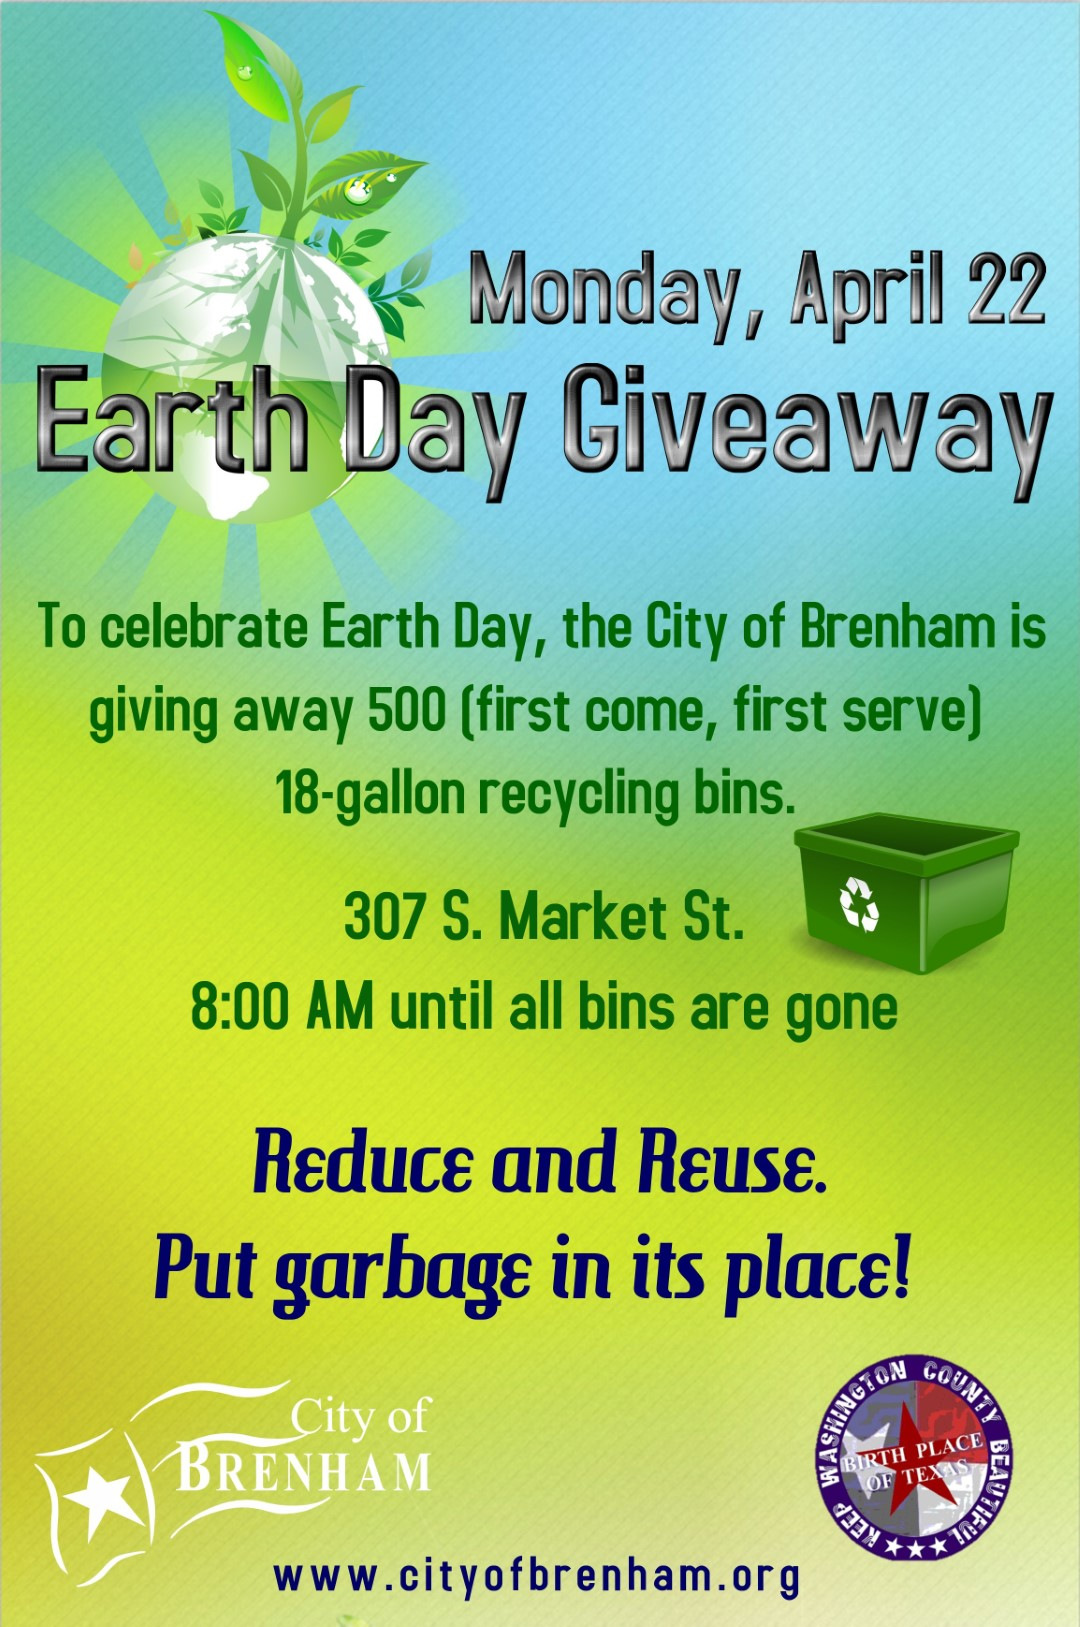 April 22, 2019 - at the City of Brenham Recycling Center To celebrate Earth Day, the City of Brenham is giving away 500 (first come, first serve) 18-gallon recycling bins.  Remember to Reduce and Reuse as well as Recycle. Put garbage in its place!  https://www.cityofbrenham.org/recycle